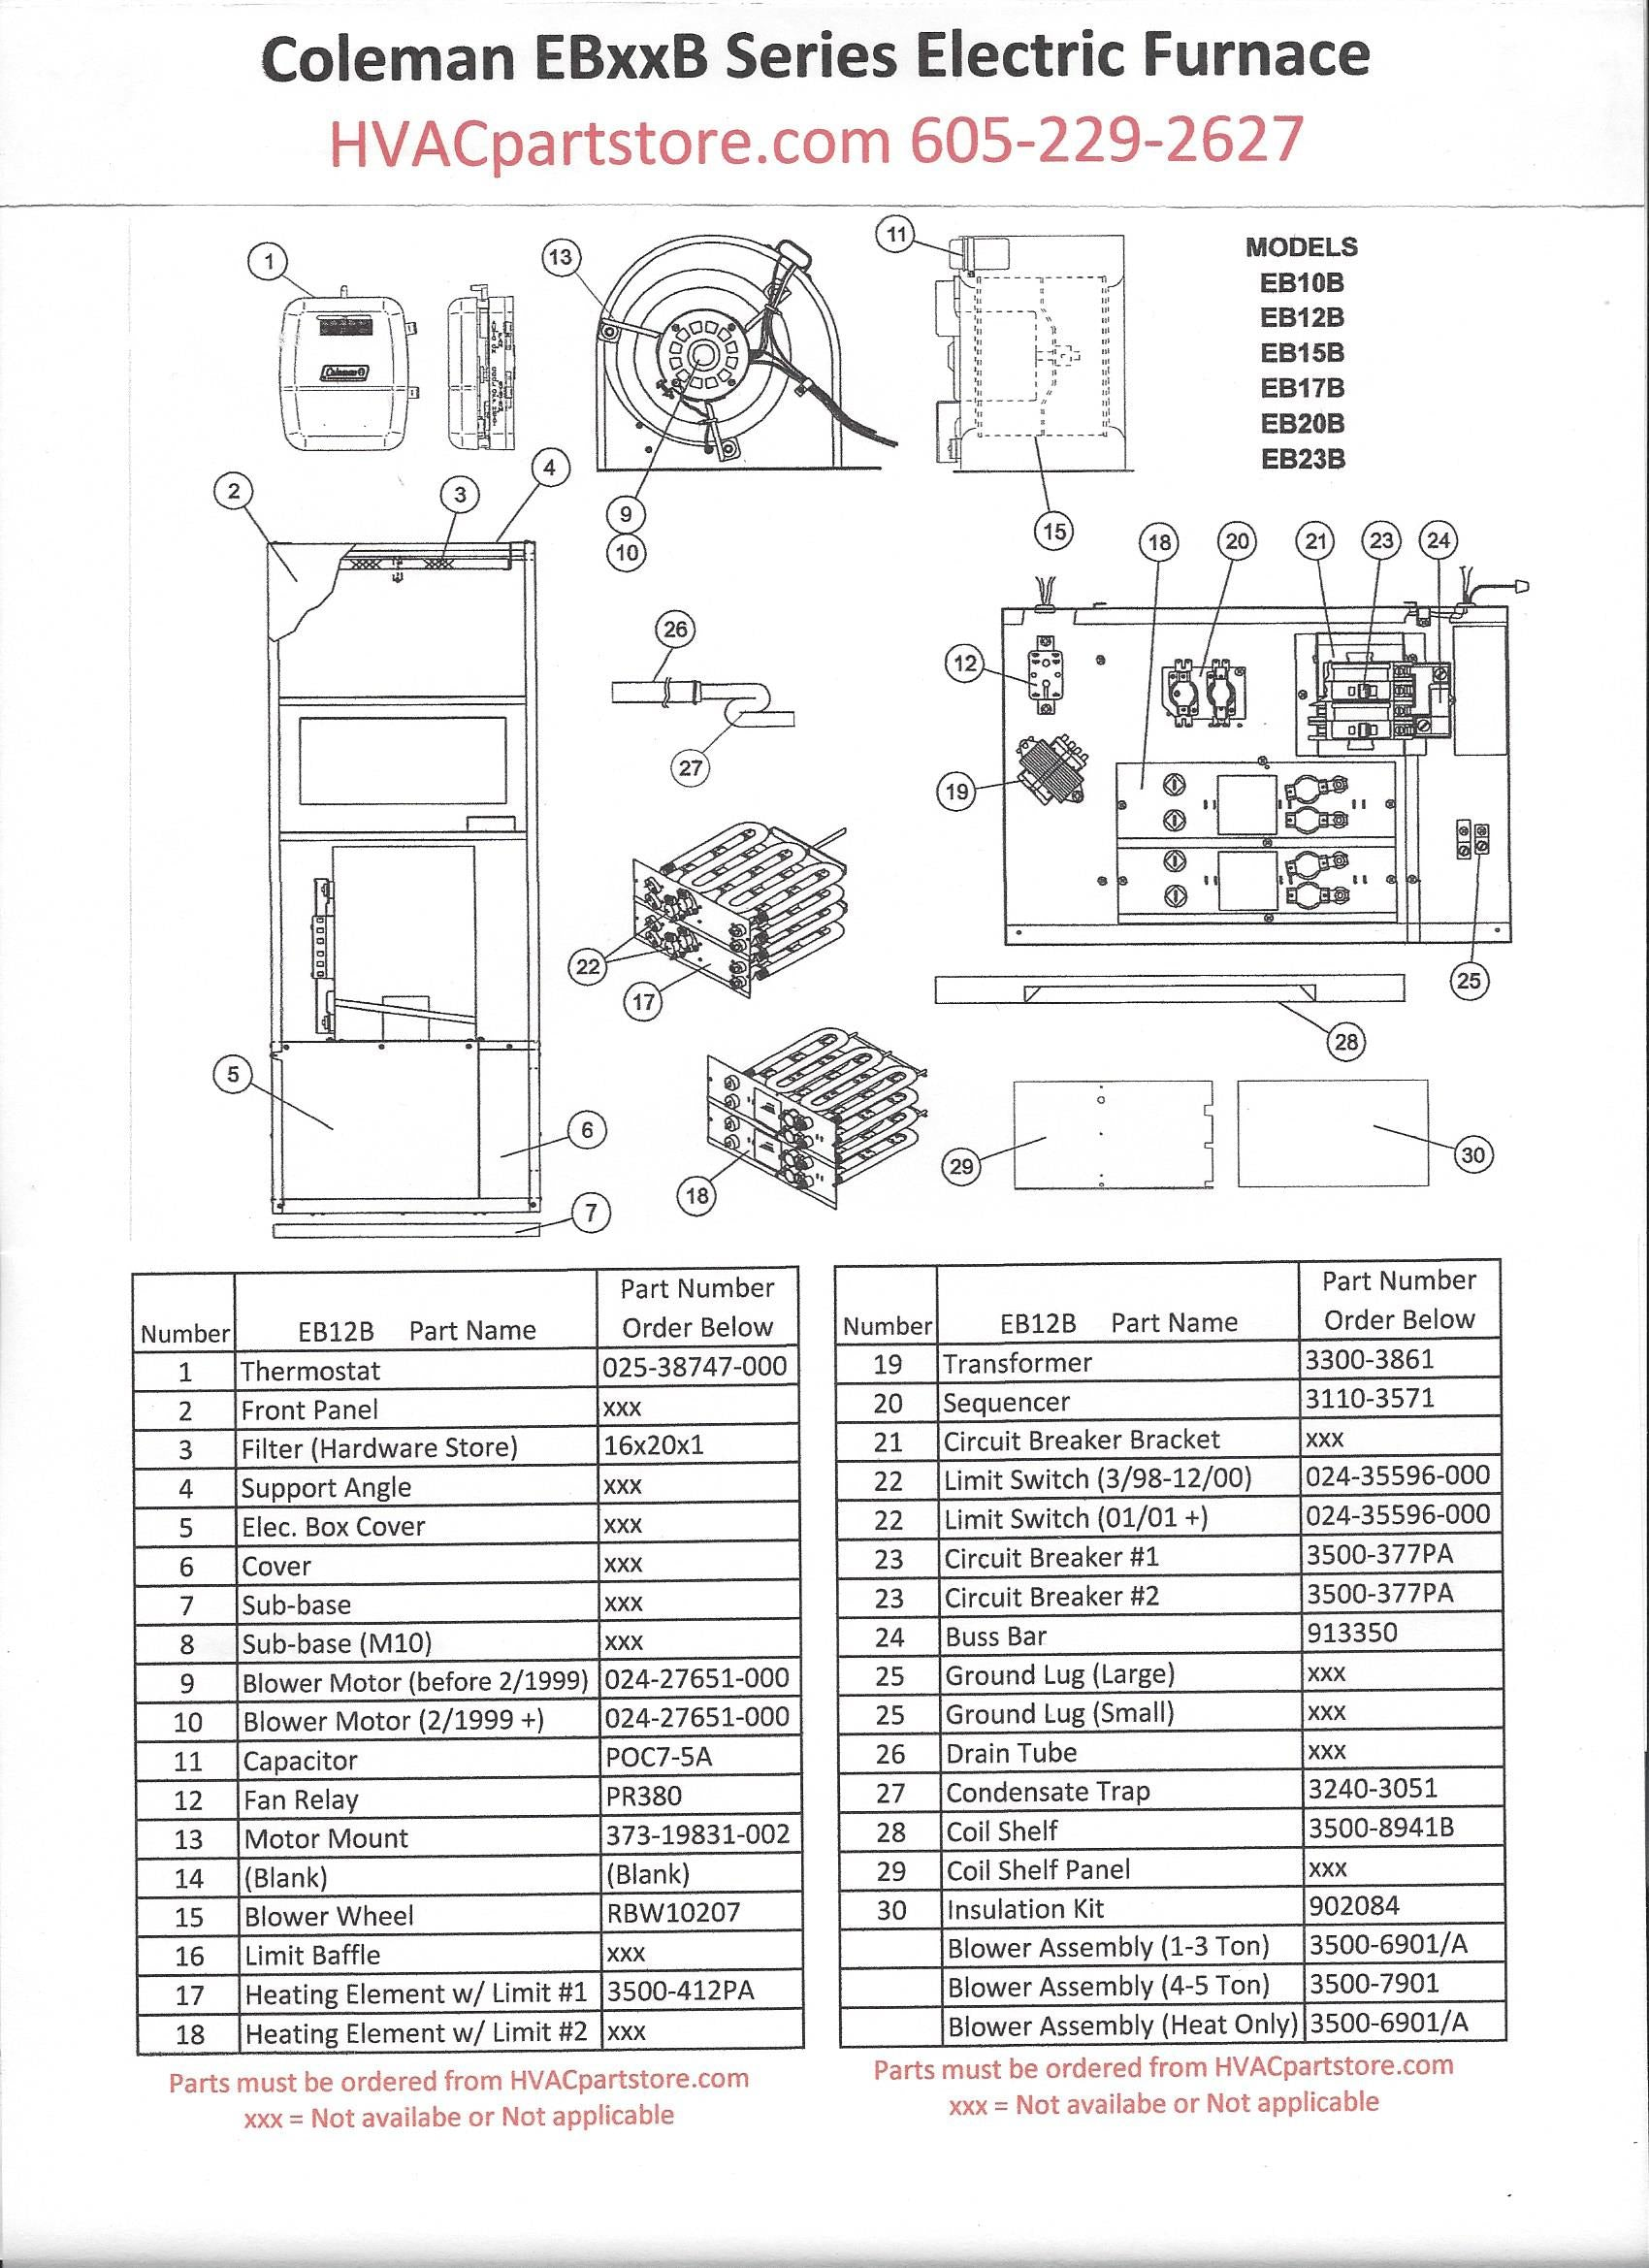 How To Size A Gas Spa Heater furthermore Eb Bparts likewise Drumandmotor Leads moreover F Ba Abbd Ad Acb D C Cf Electrical Wiring Diagram Engineering Courses also Us D. on electric furnace wiring diagrams